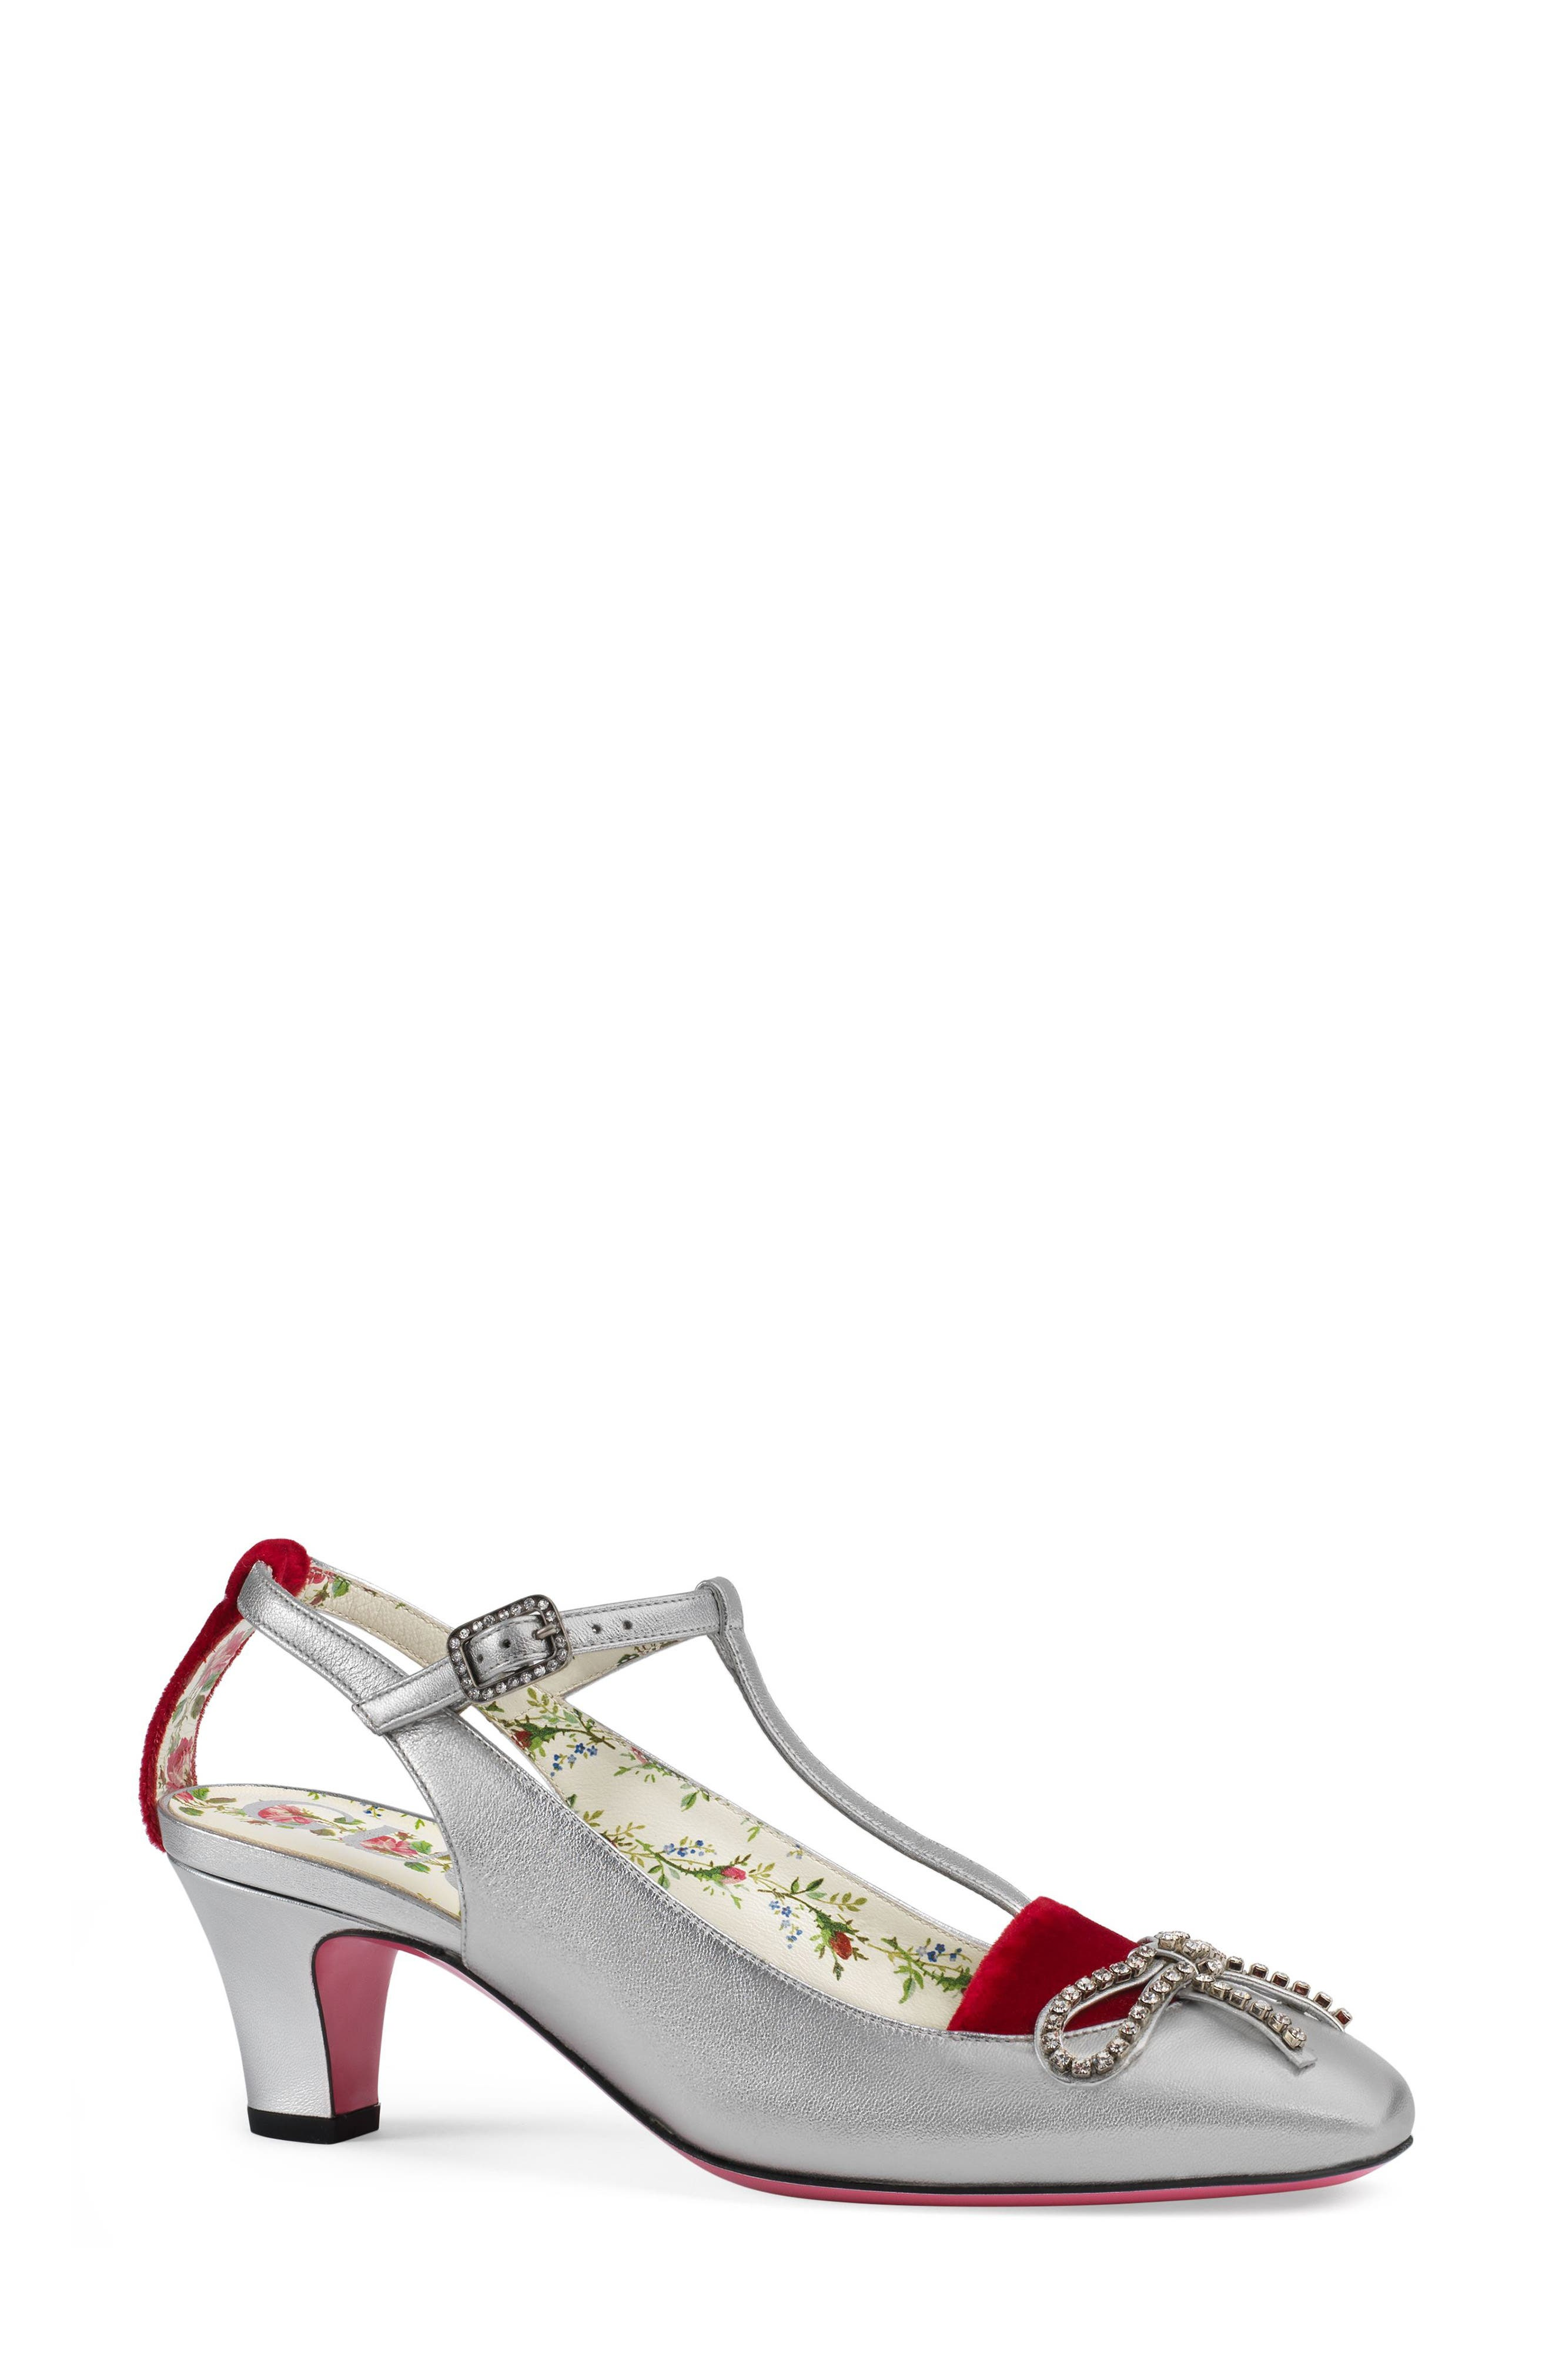 Alternate Image 1 Selected - Gucci Anita Crystal Bow T-Strap Pump (Women)